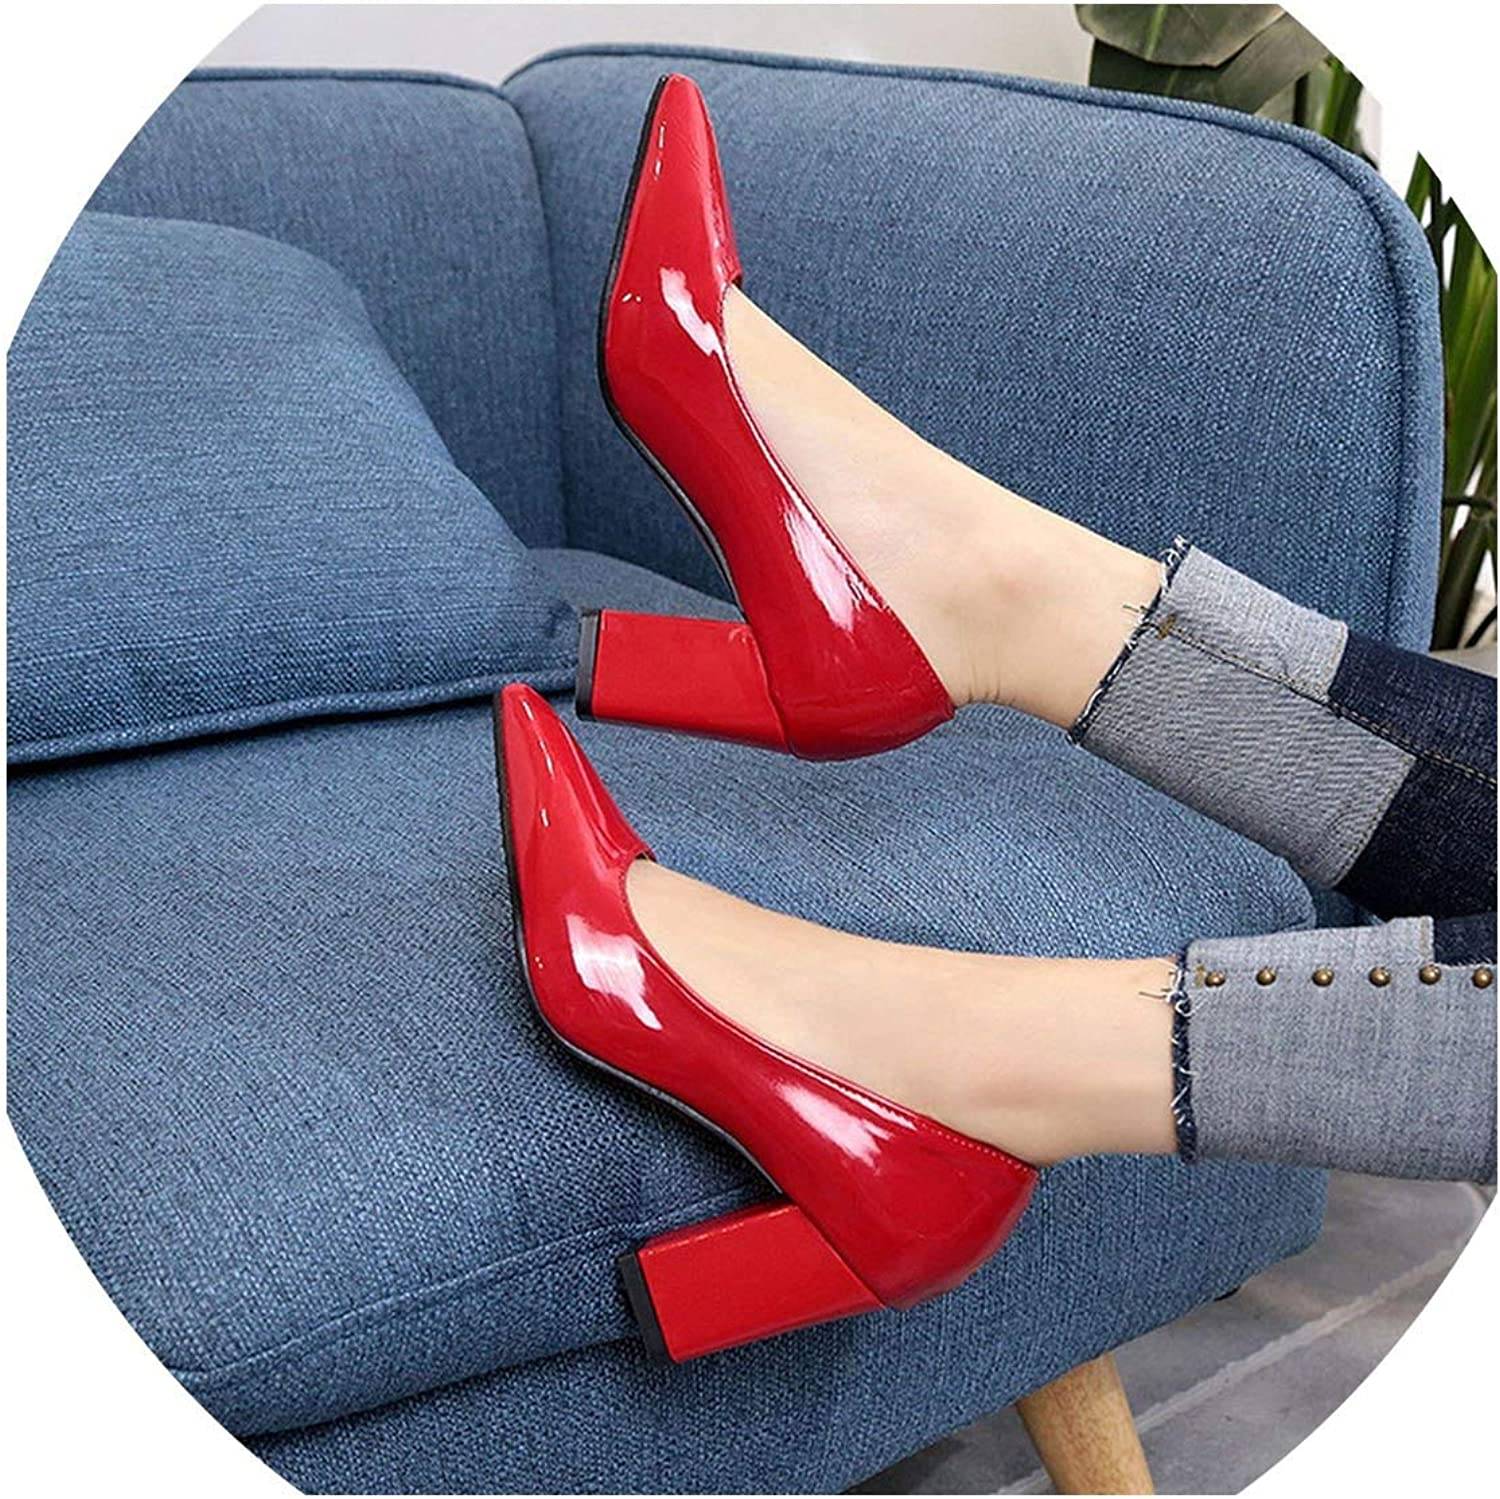 Pleasantlyday Women Pointed Thick High Heel 7 cm Single Autumn Shallow Mouth